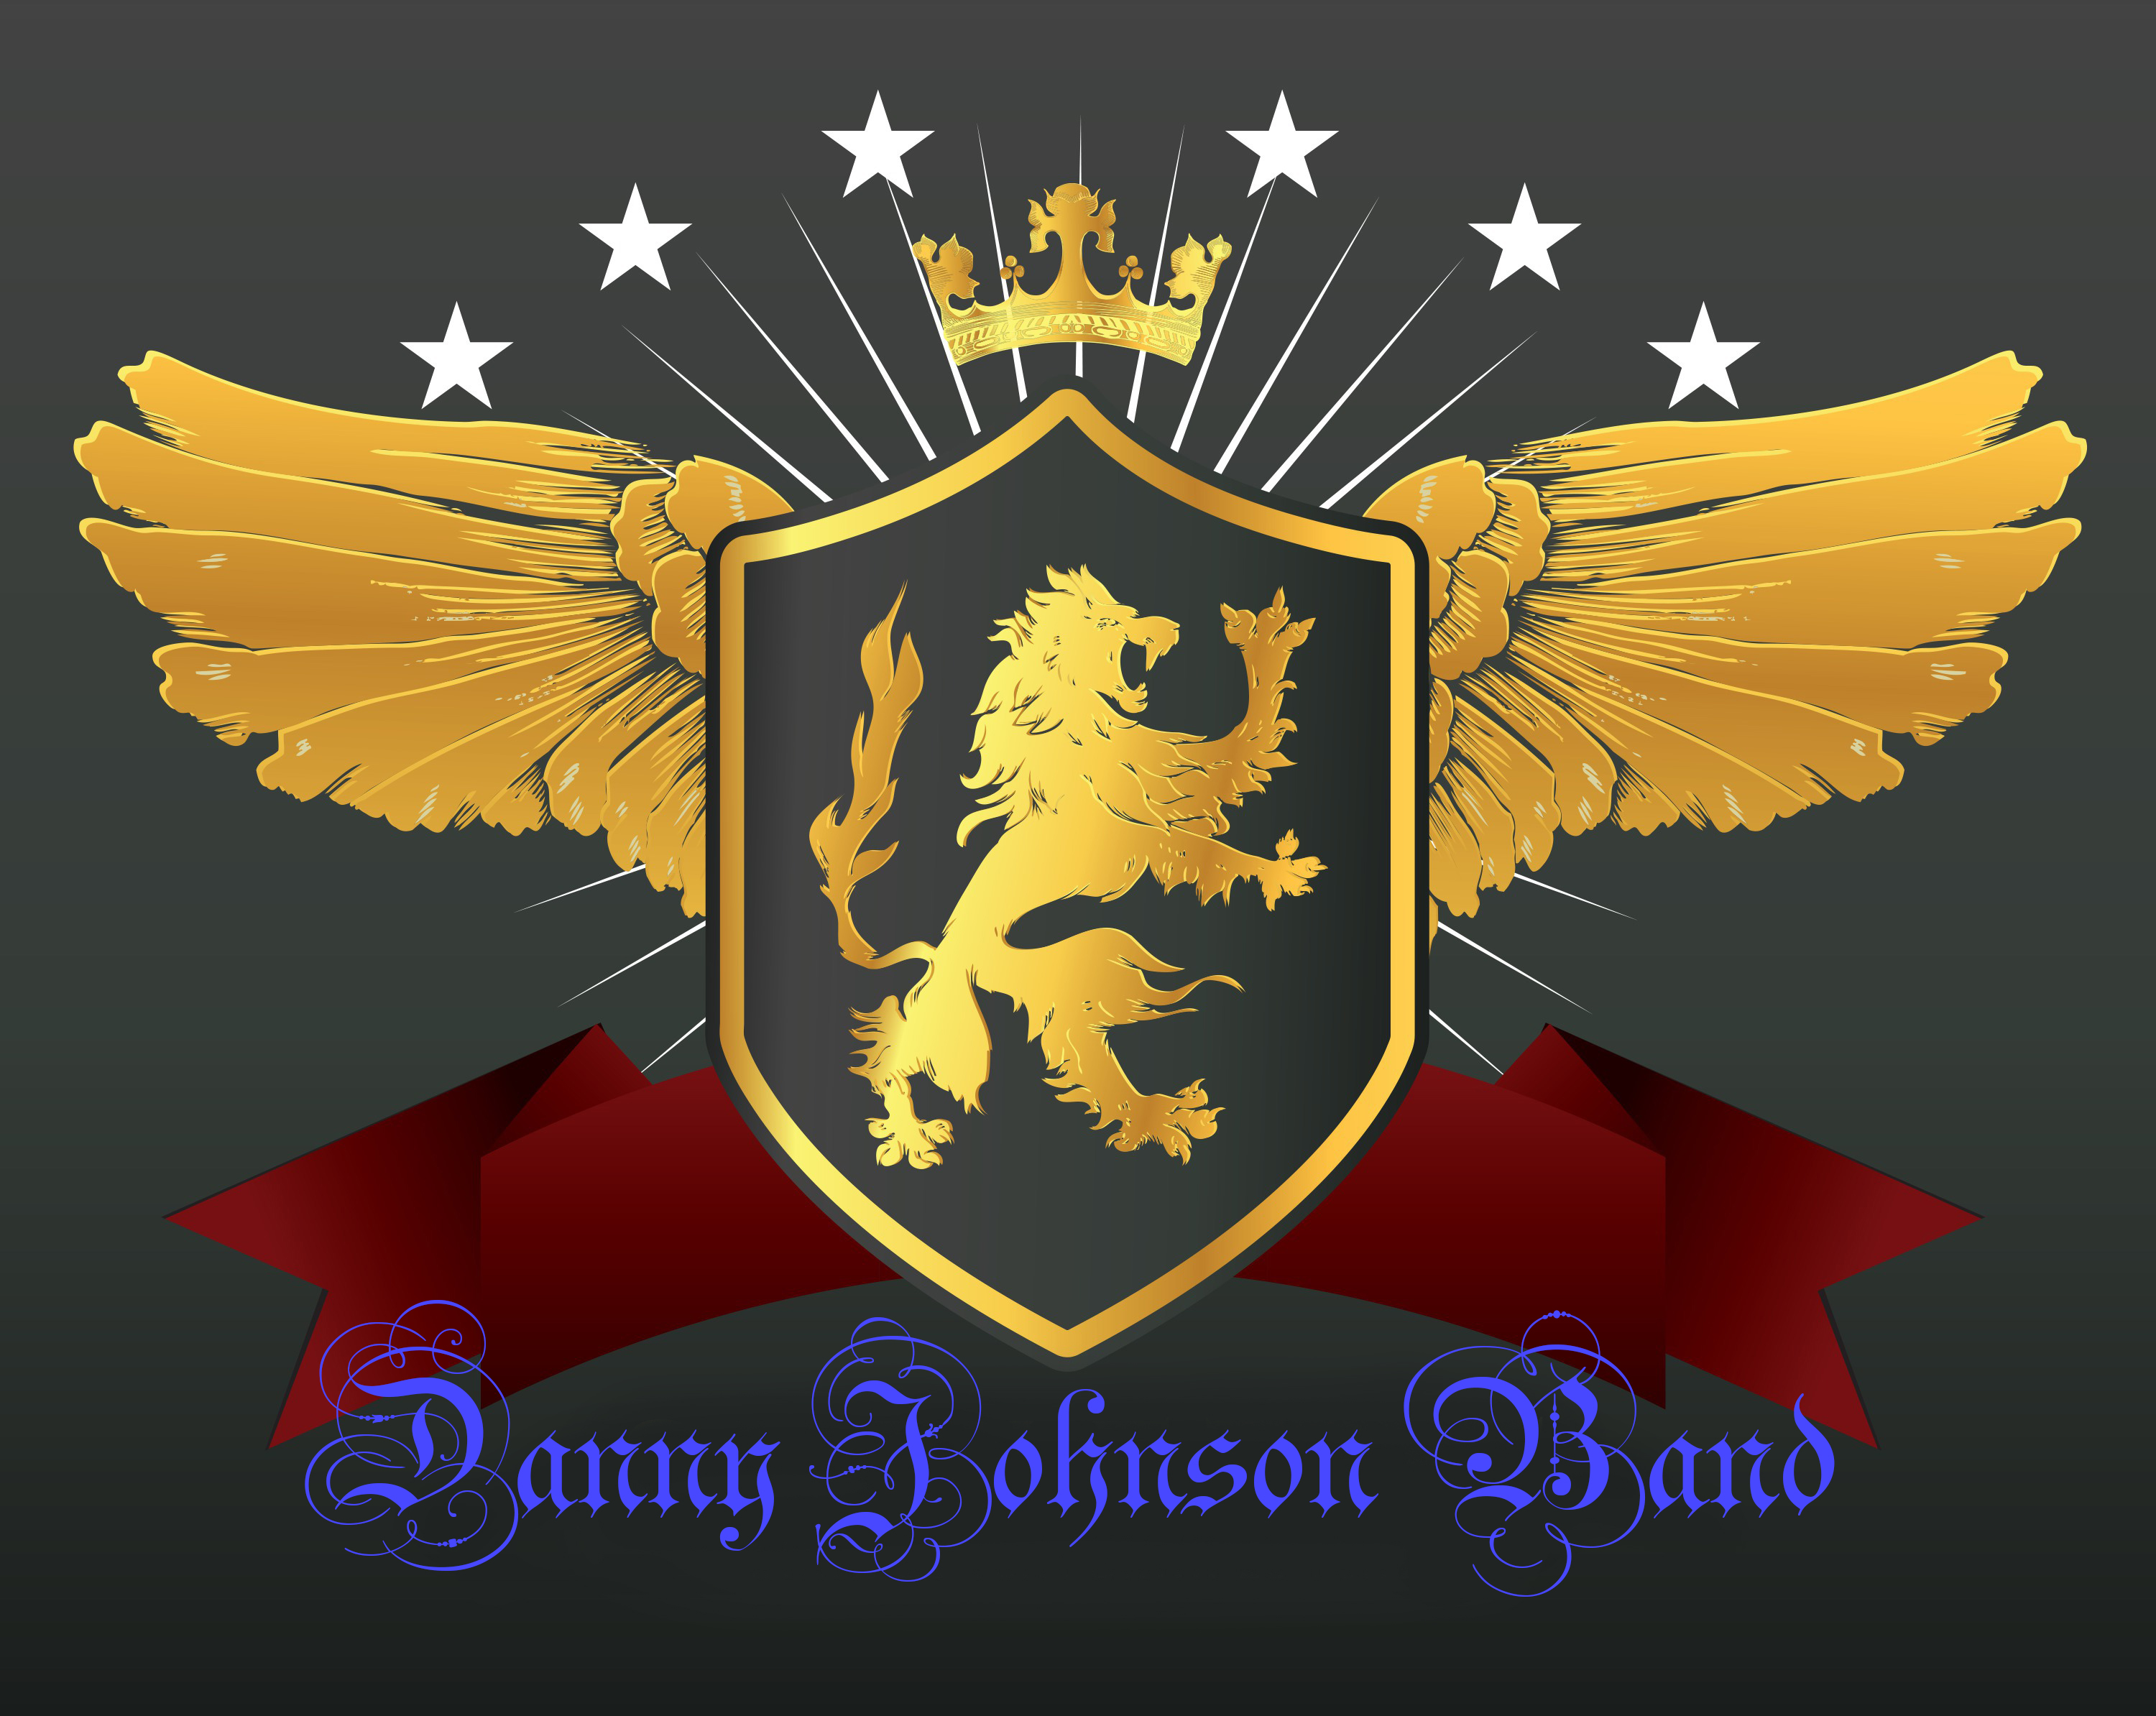 Danny Johnson Band...